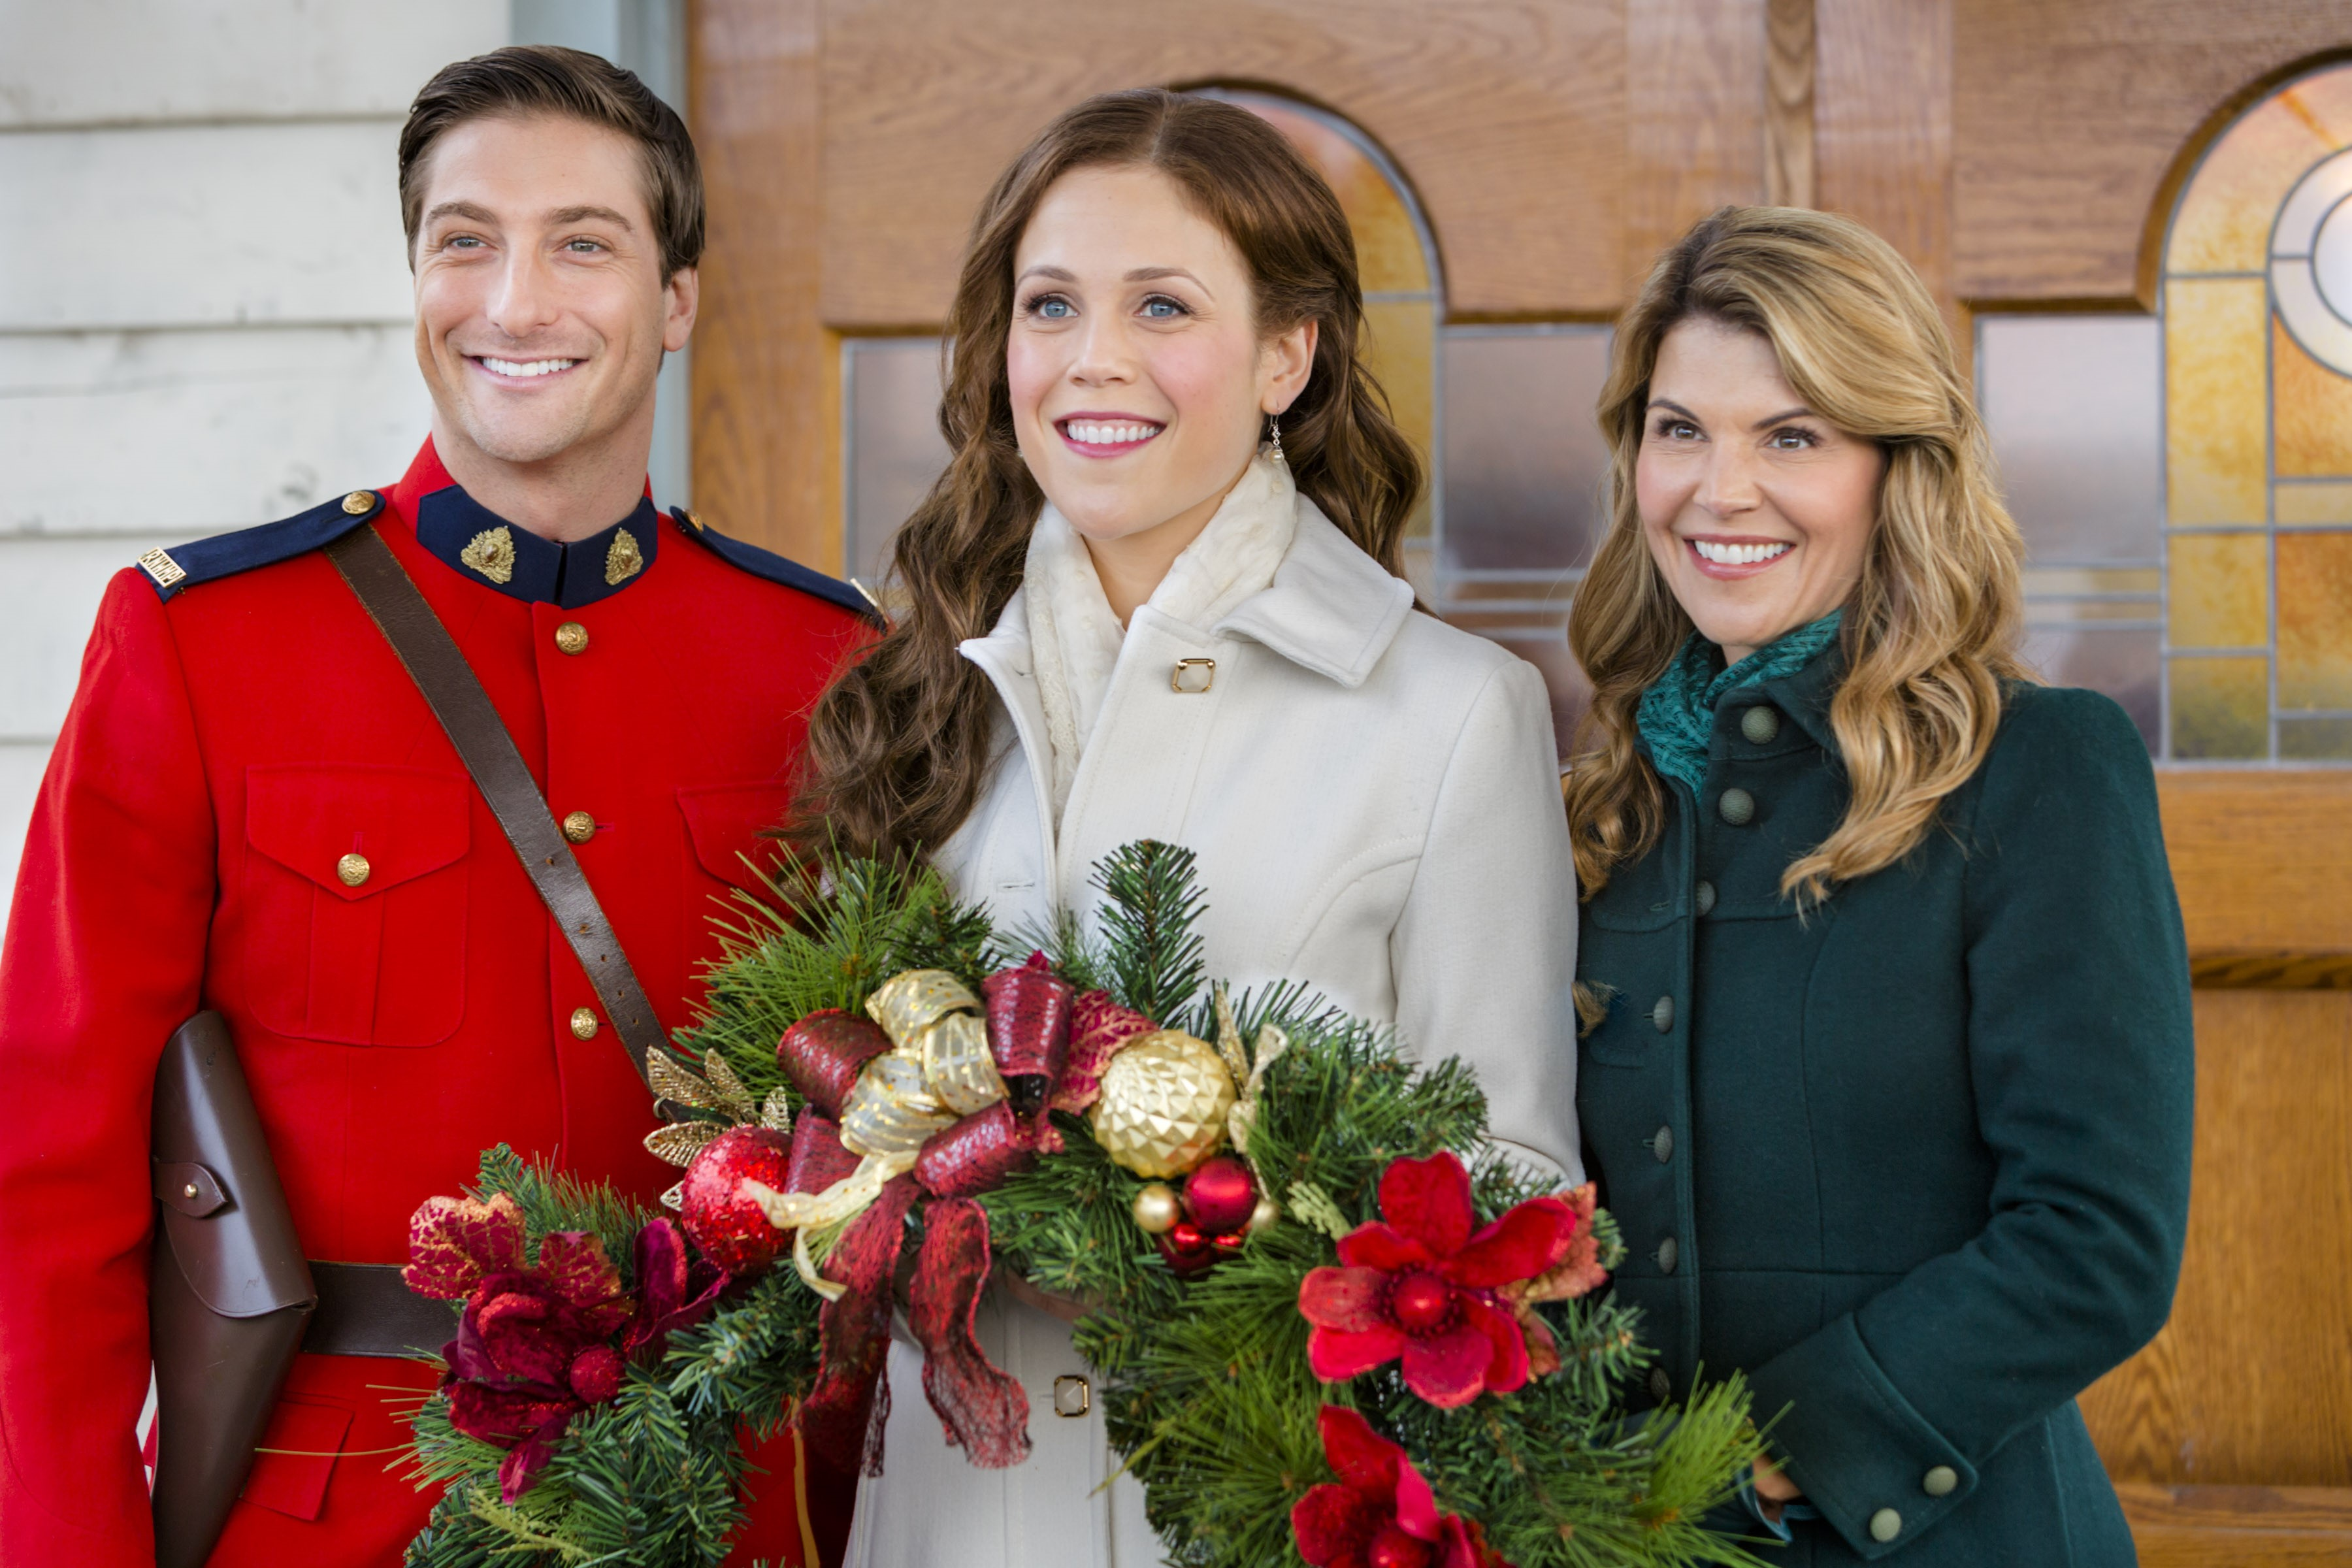 Jack, Elizabeth, Abigail...When Calls the Heart - Photo: Daniel Lissing, Erin Krakow, Lori Loughlin Credit: Copyright 2016 Crown Media United States, LLC/Photographer: Eike Schroter